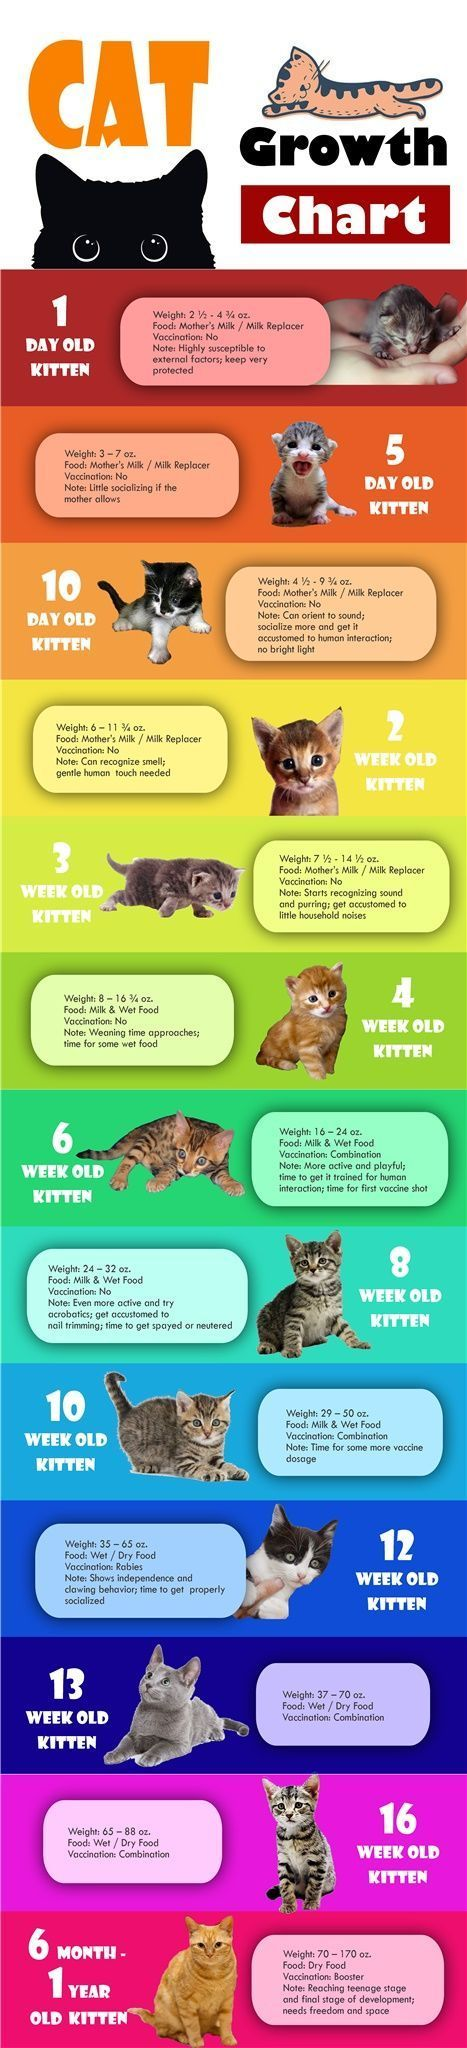 Food Infographic Infographic Kitten Cat Growth Chart By Age Weight And Food Source Best1x Com Infographic Descrip Cat Infographic Kitten Care Kitten